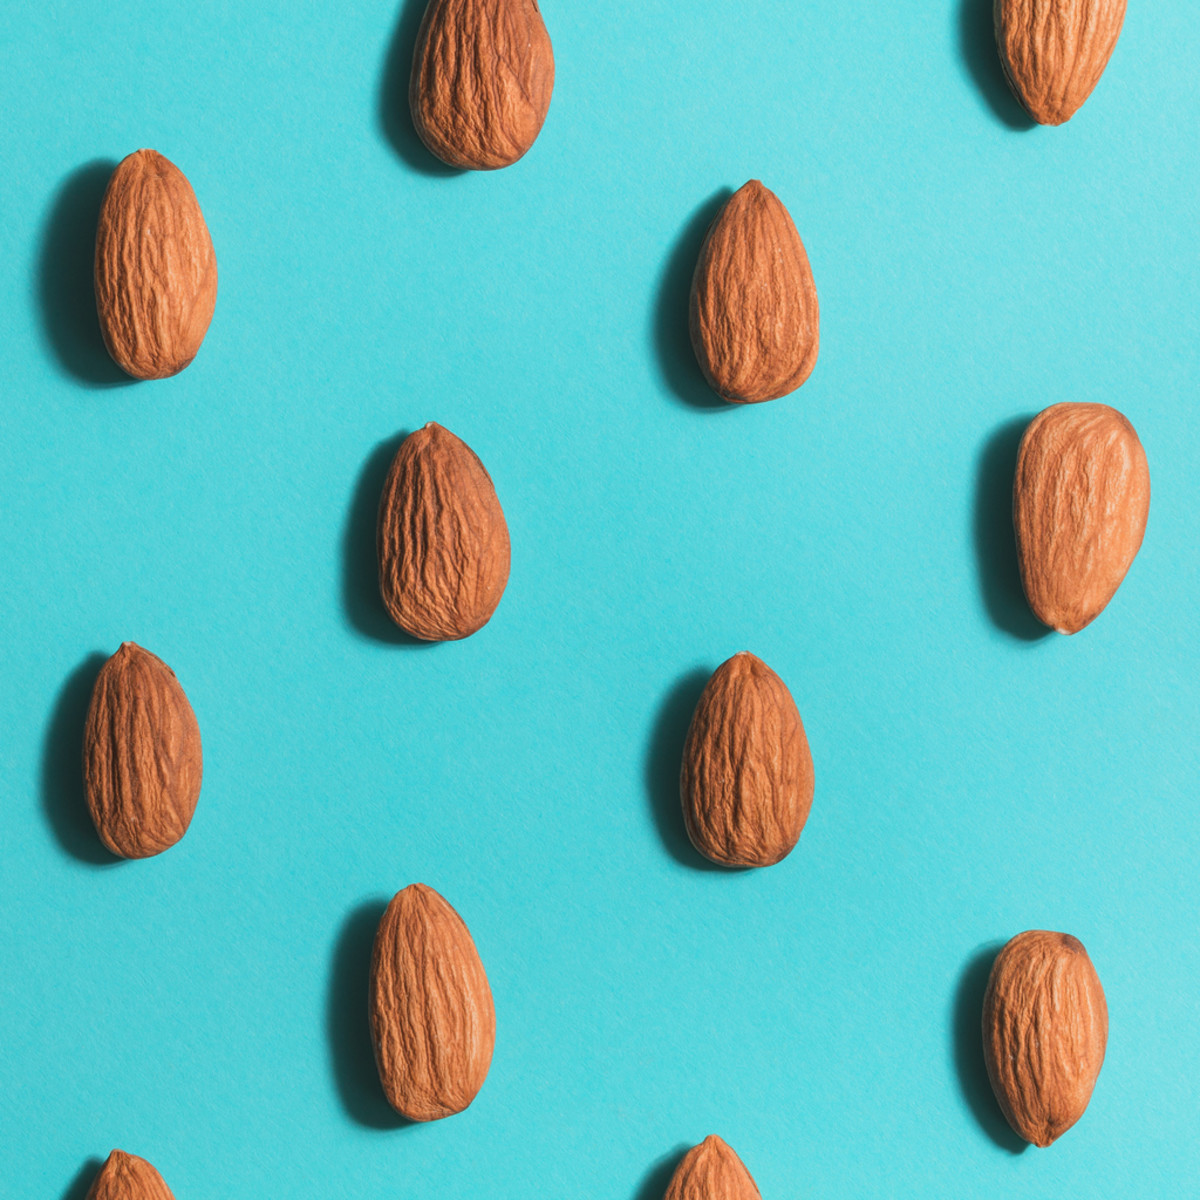 10 Game-Changing Uses for Whole Almonds